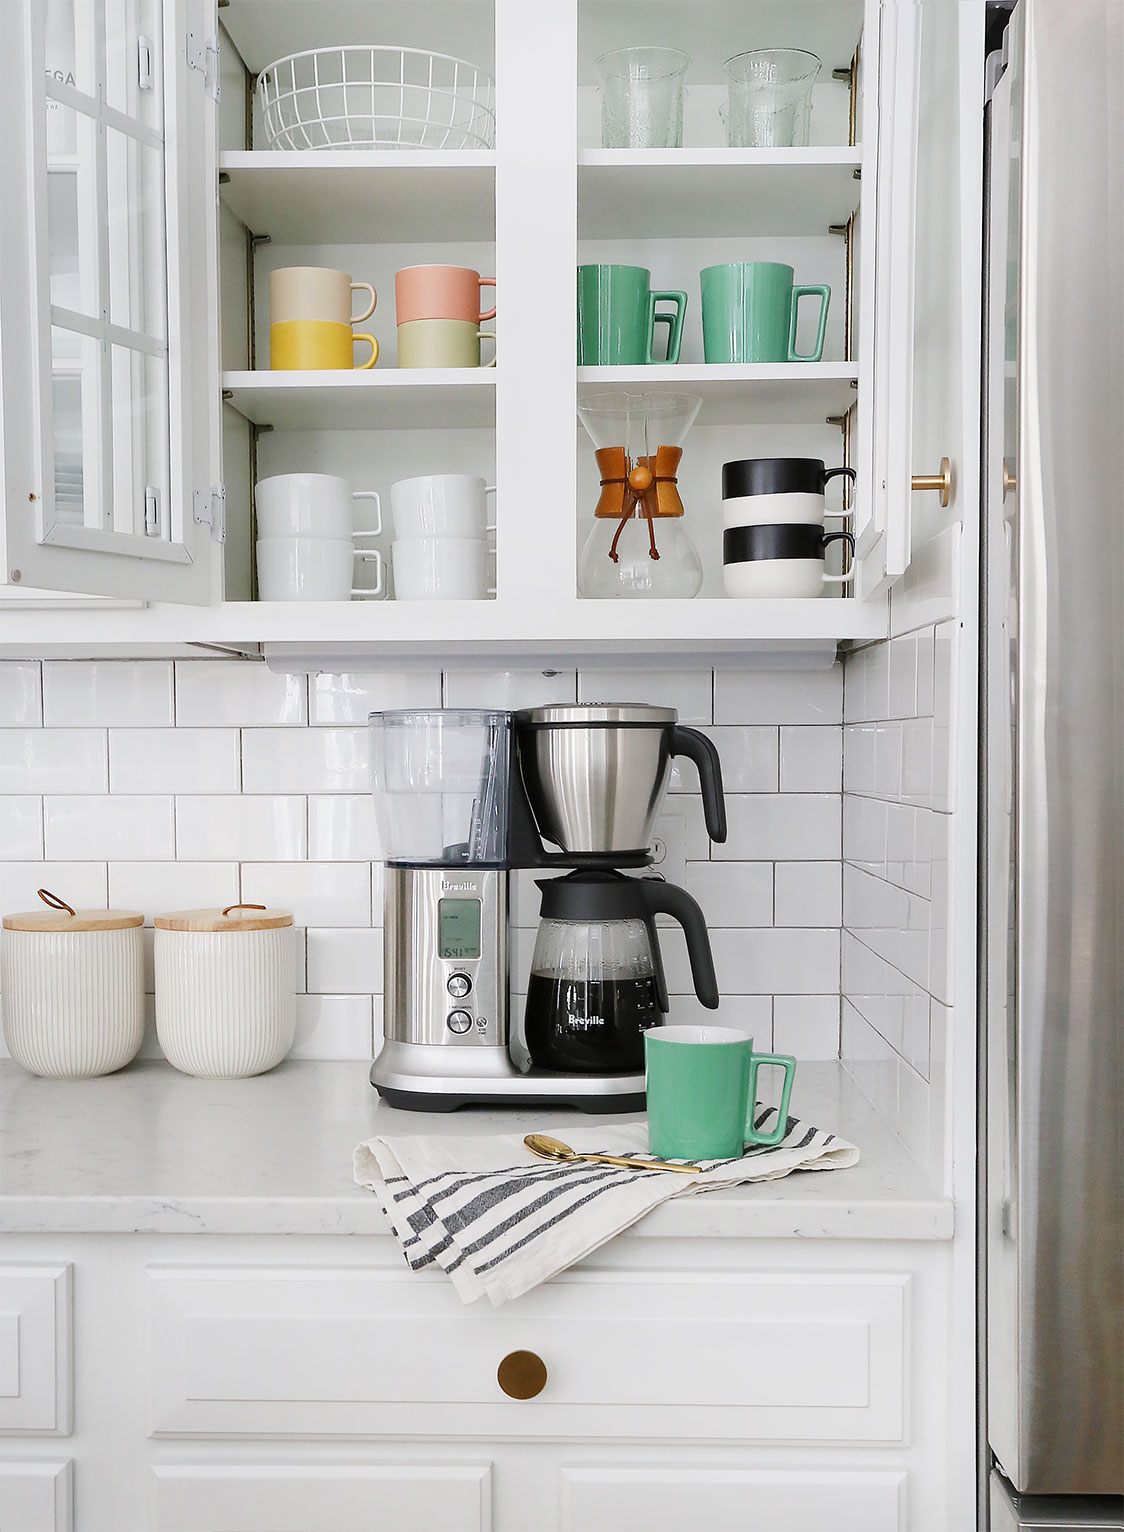 Canisters   /   Coffee Maker   /   Black & White Mugs   /   Brass Pulls